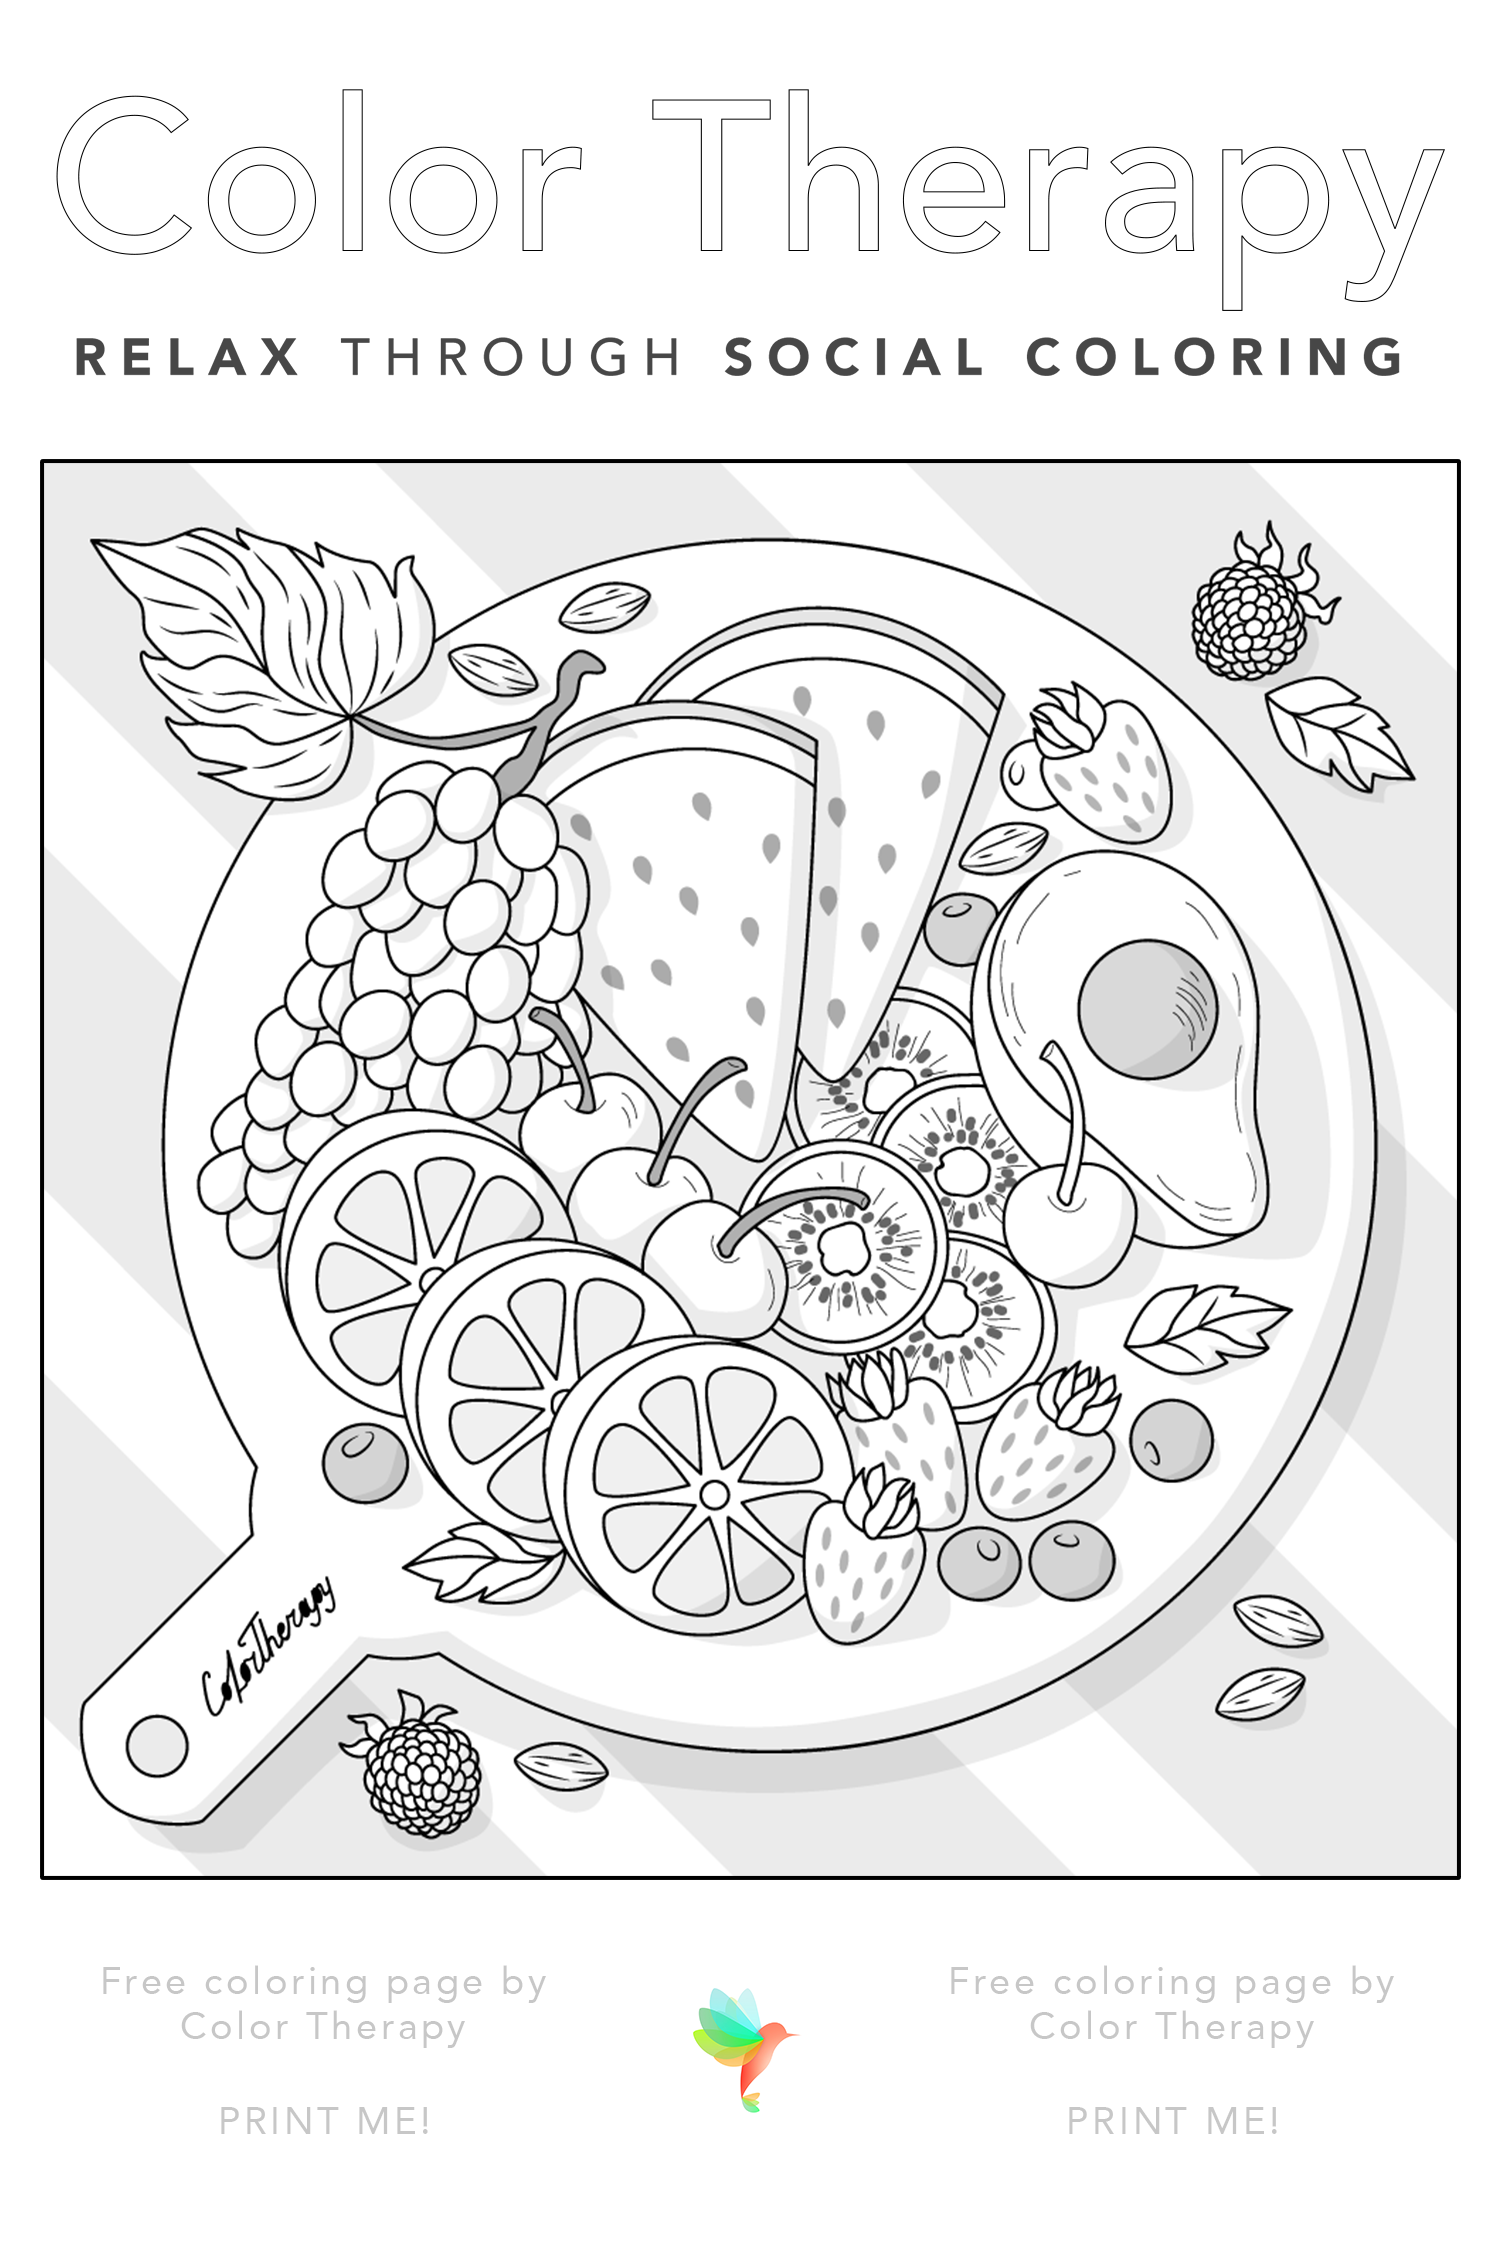 Color Therapy Gift Of The Day Free Coloring Template Cute Coloring Pages Color Therapy Bird Coloring Pages